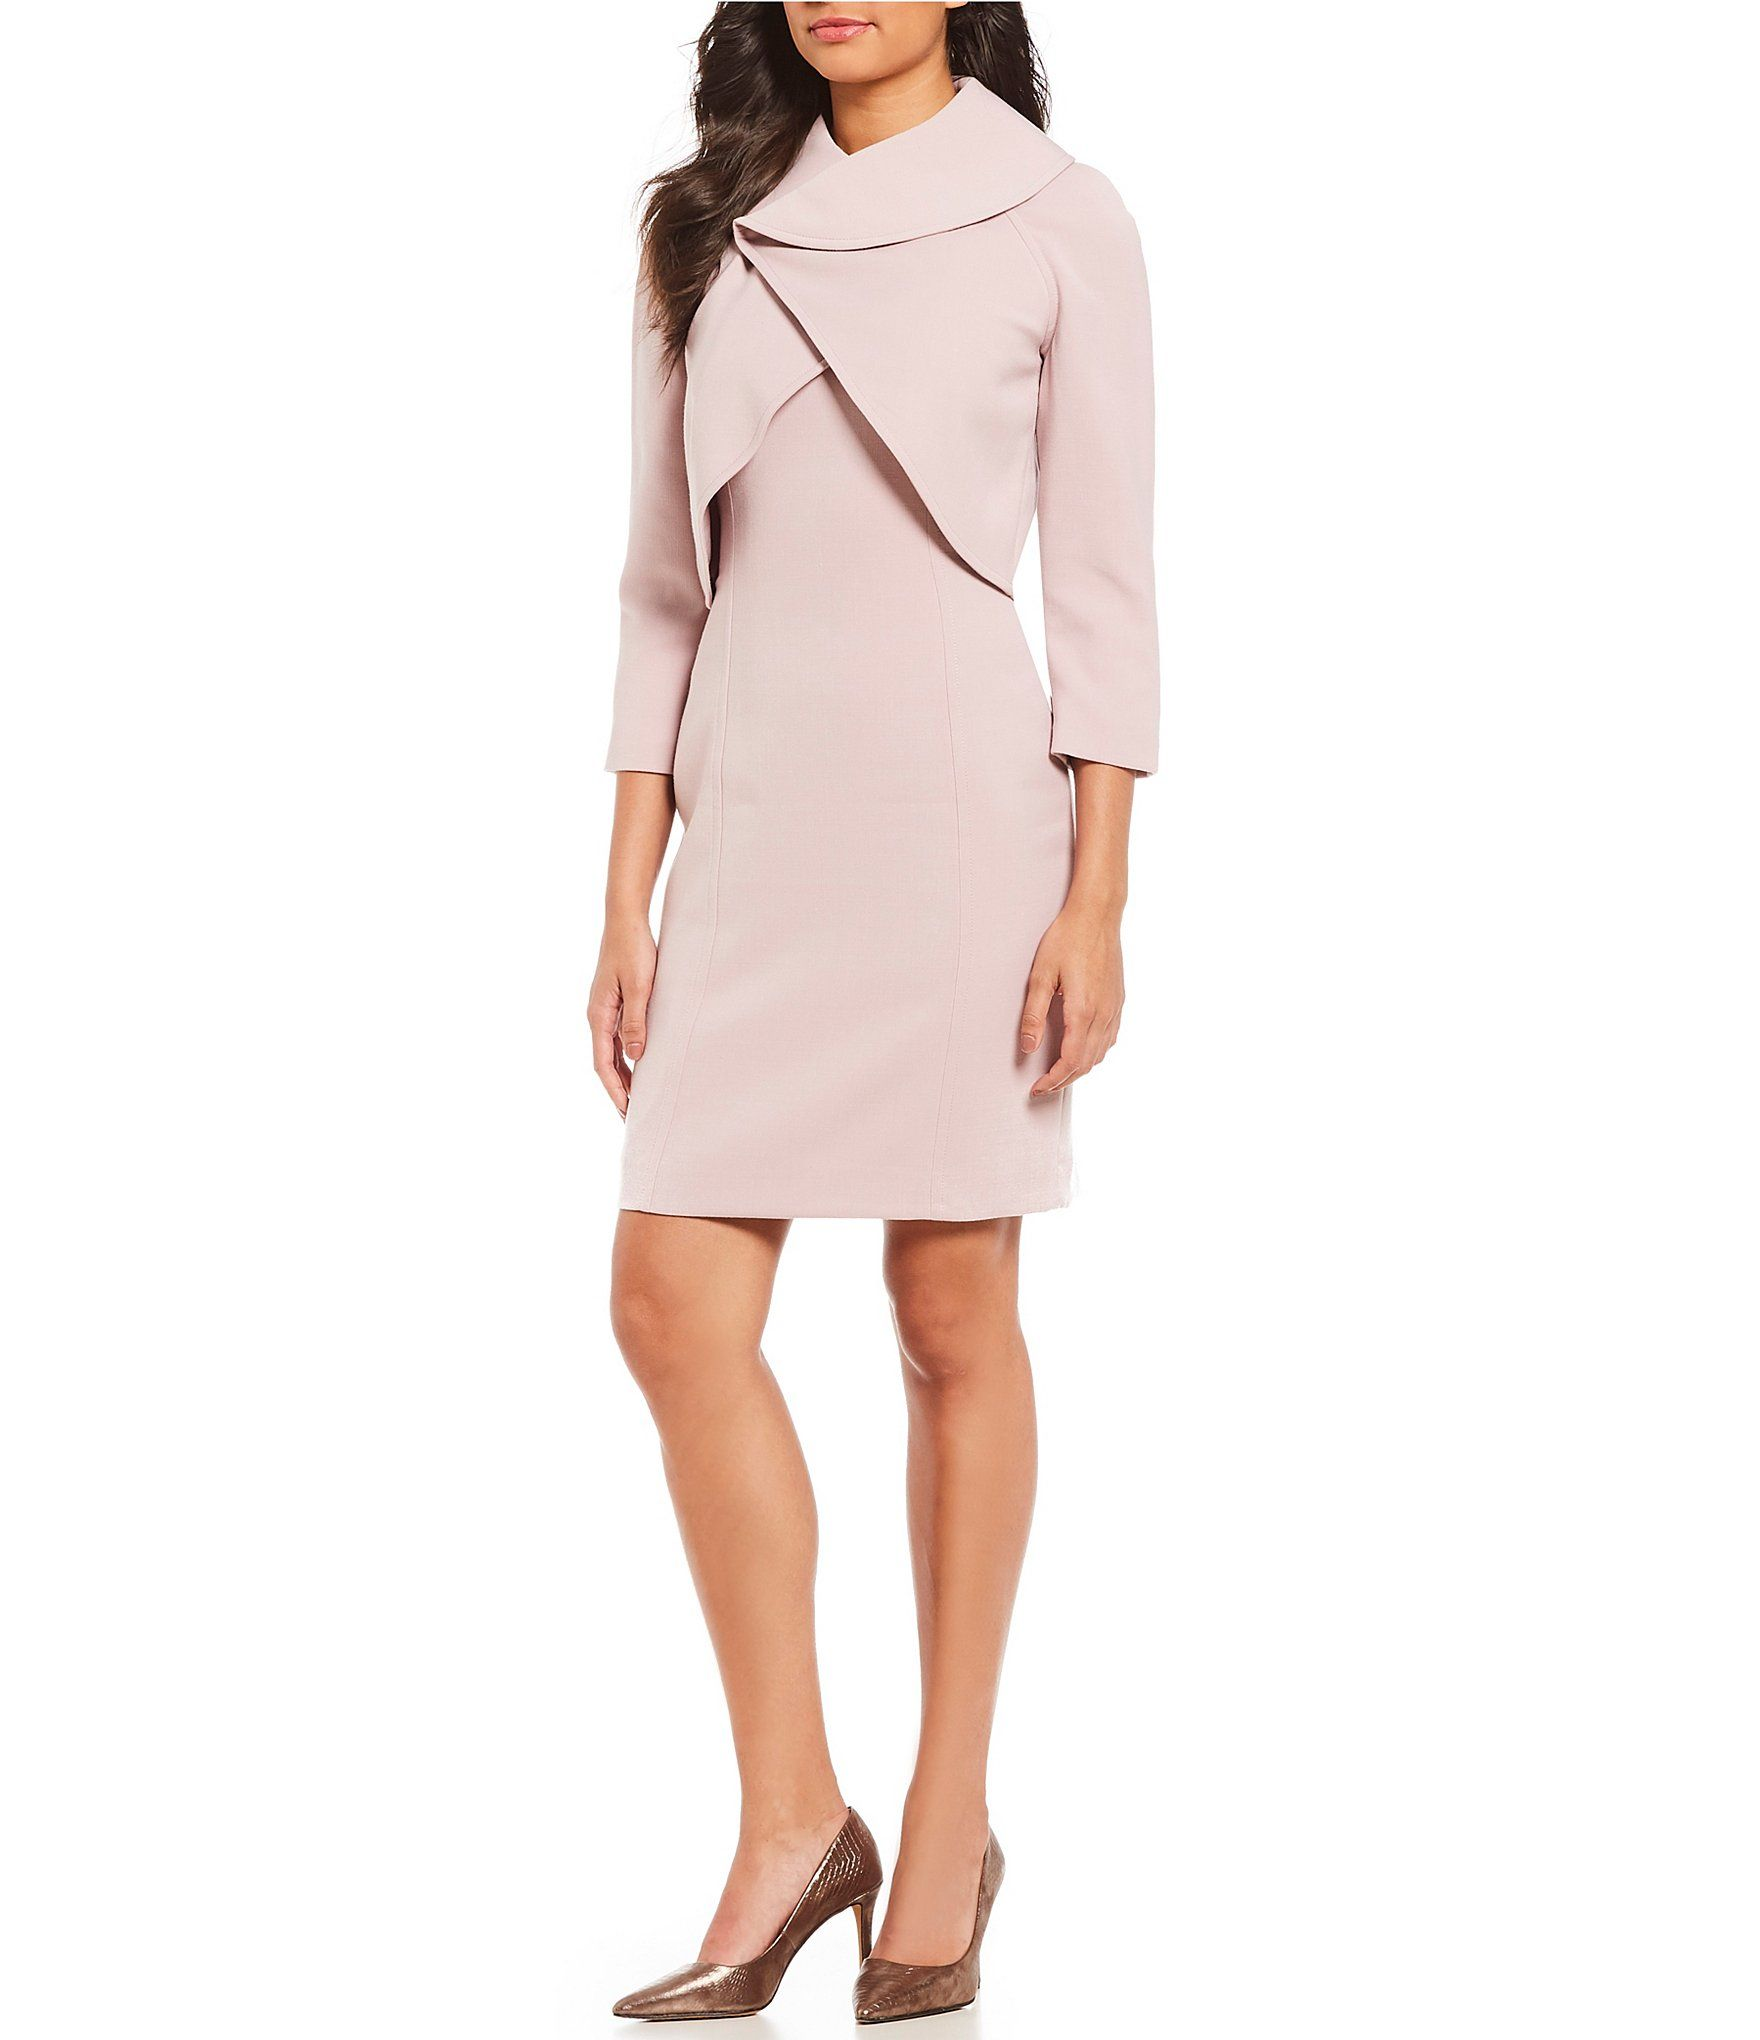 Shop For Tahari Asl Wrap Jacket Dress Suit At Dillards Com Visit